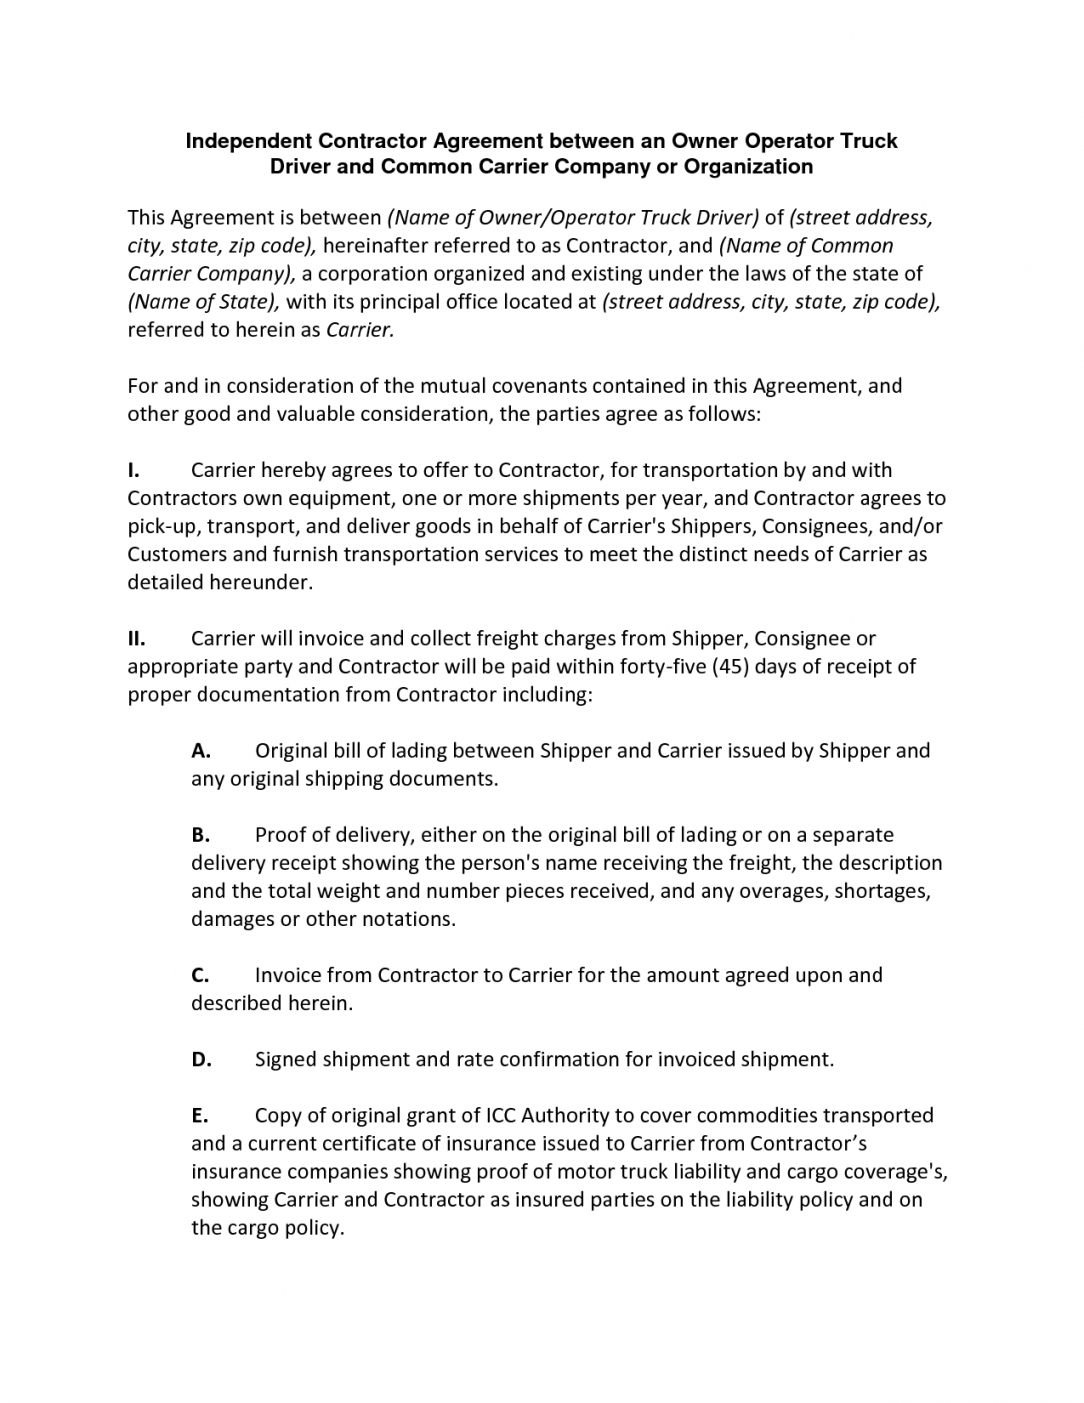 our independent contractor agreement between an owner operator owner driver contract template